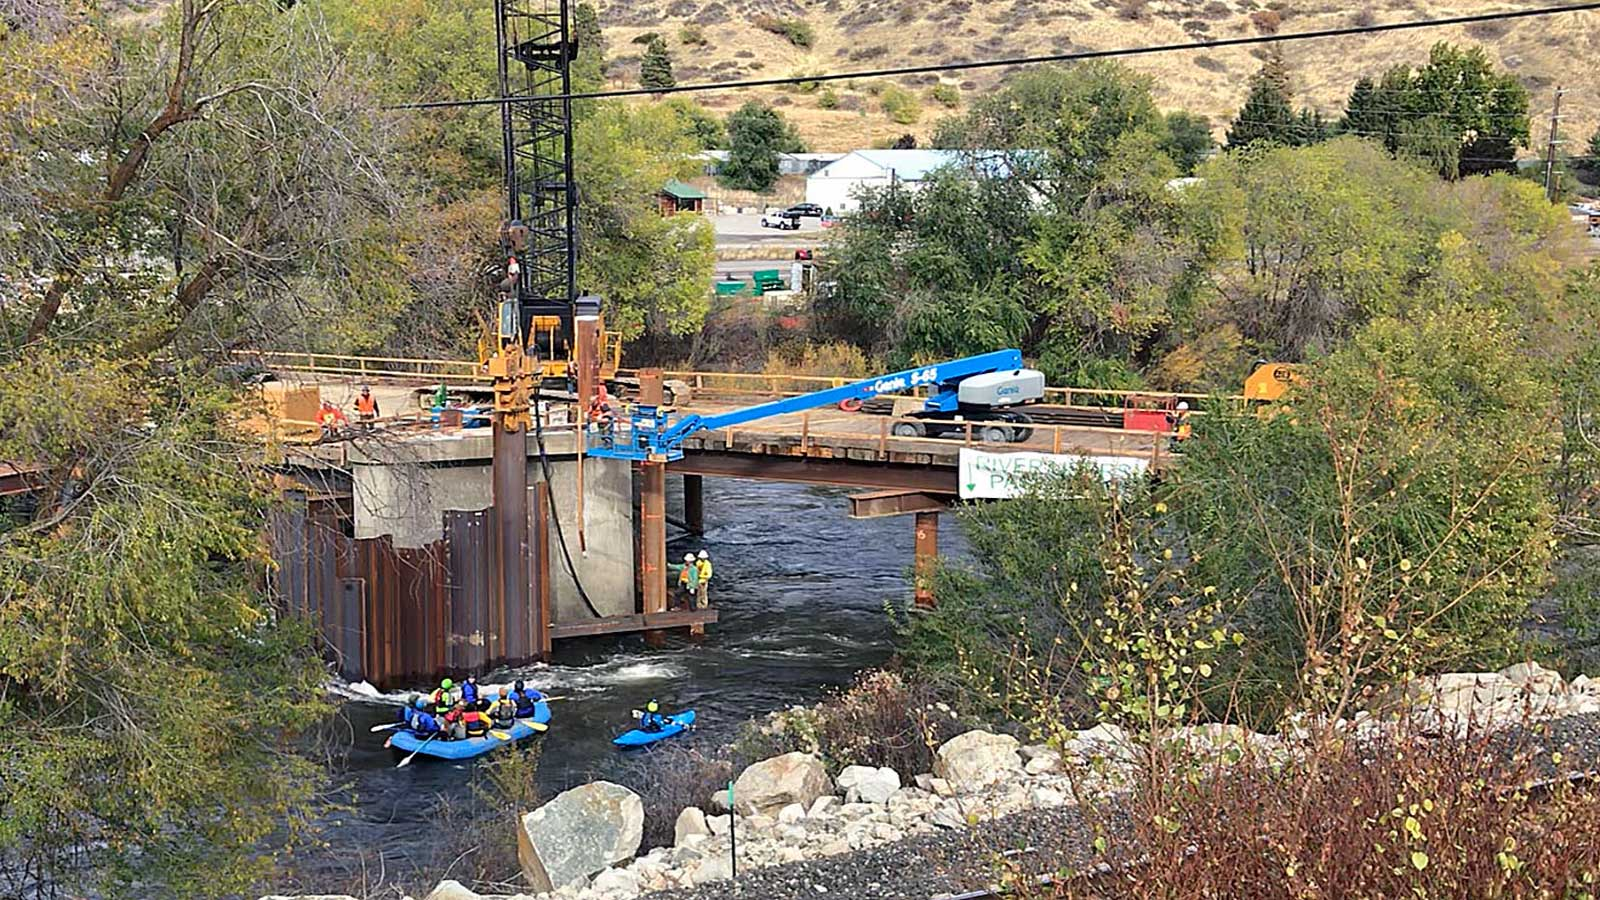 Signage at West Cashmere Bridge directs river recreationists through construction site